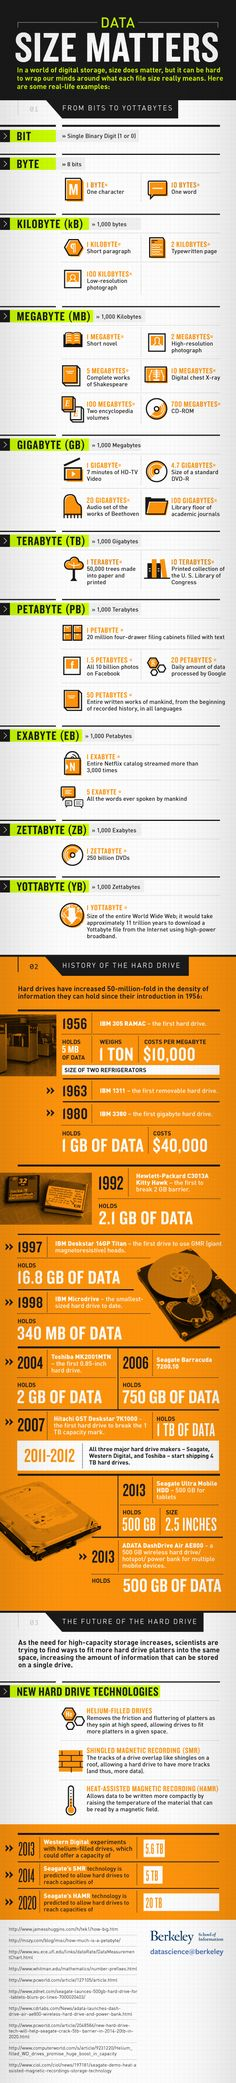 Data-Size-Matters-IG